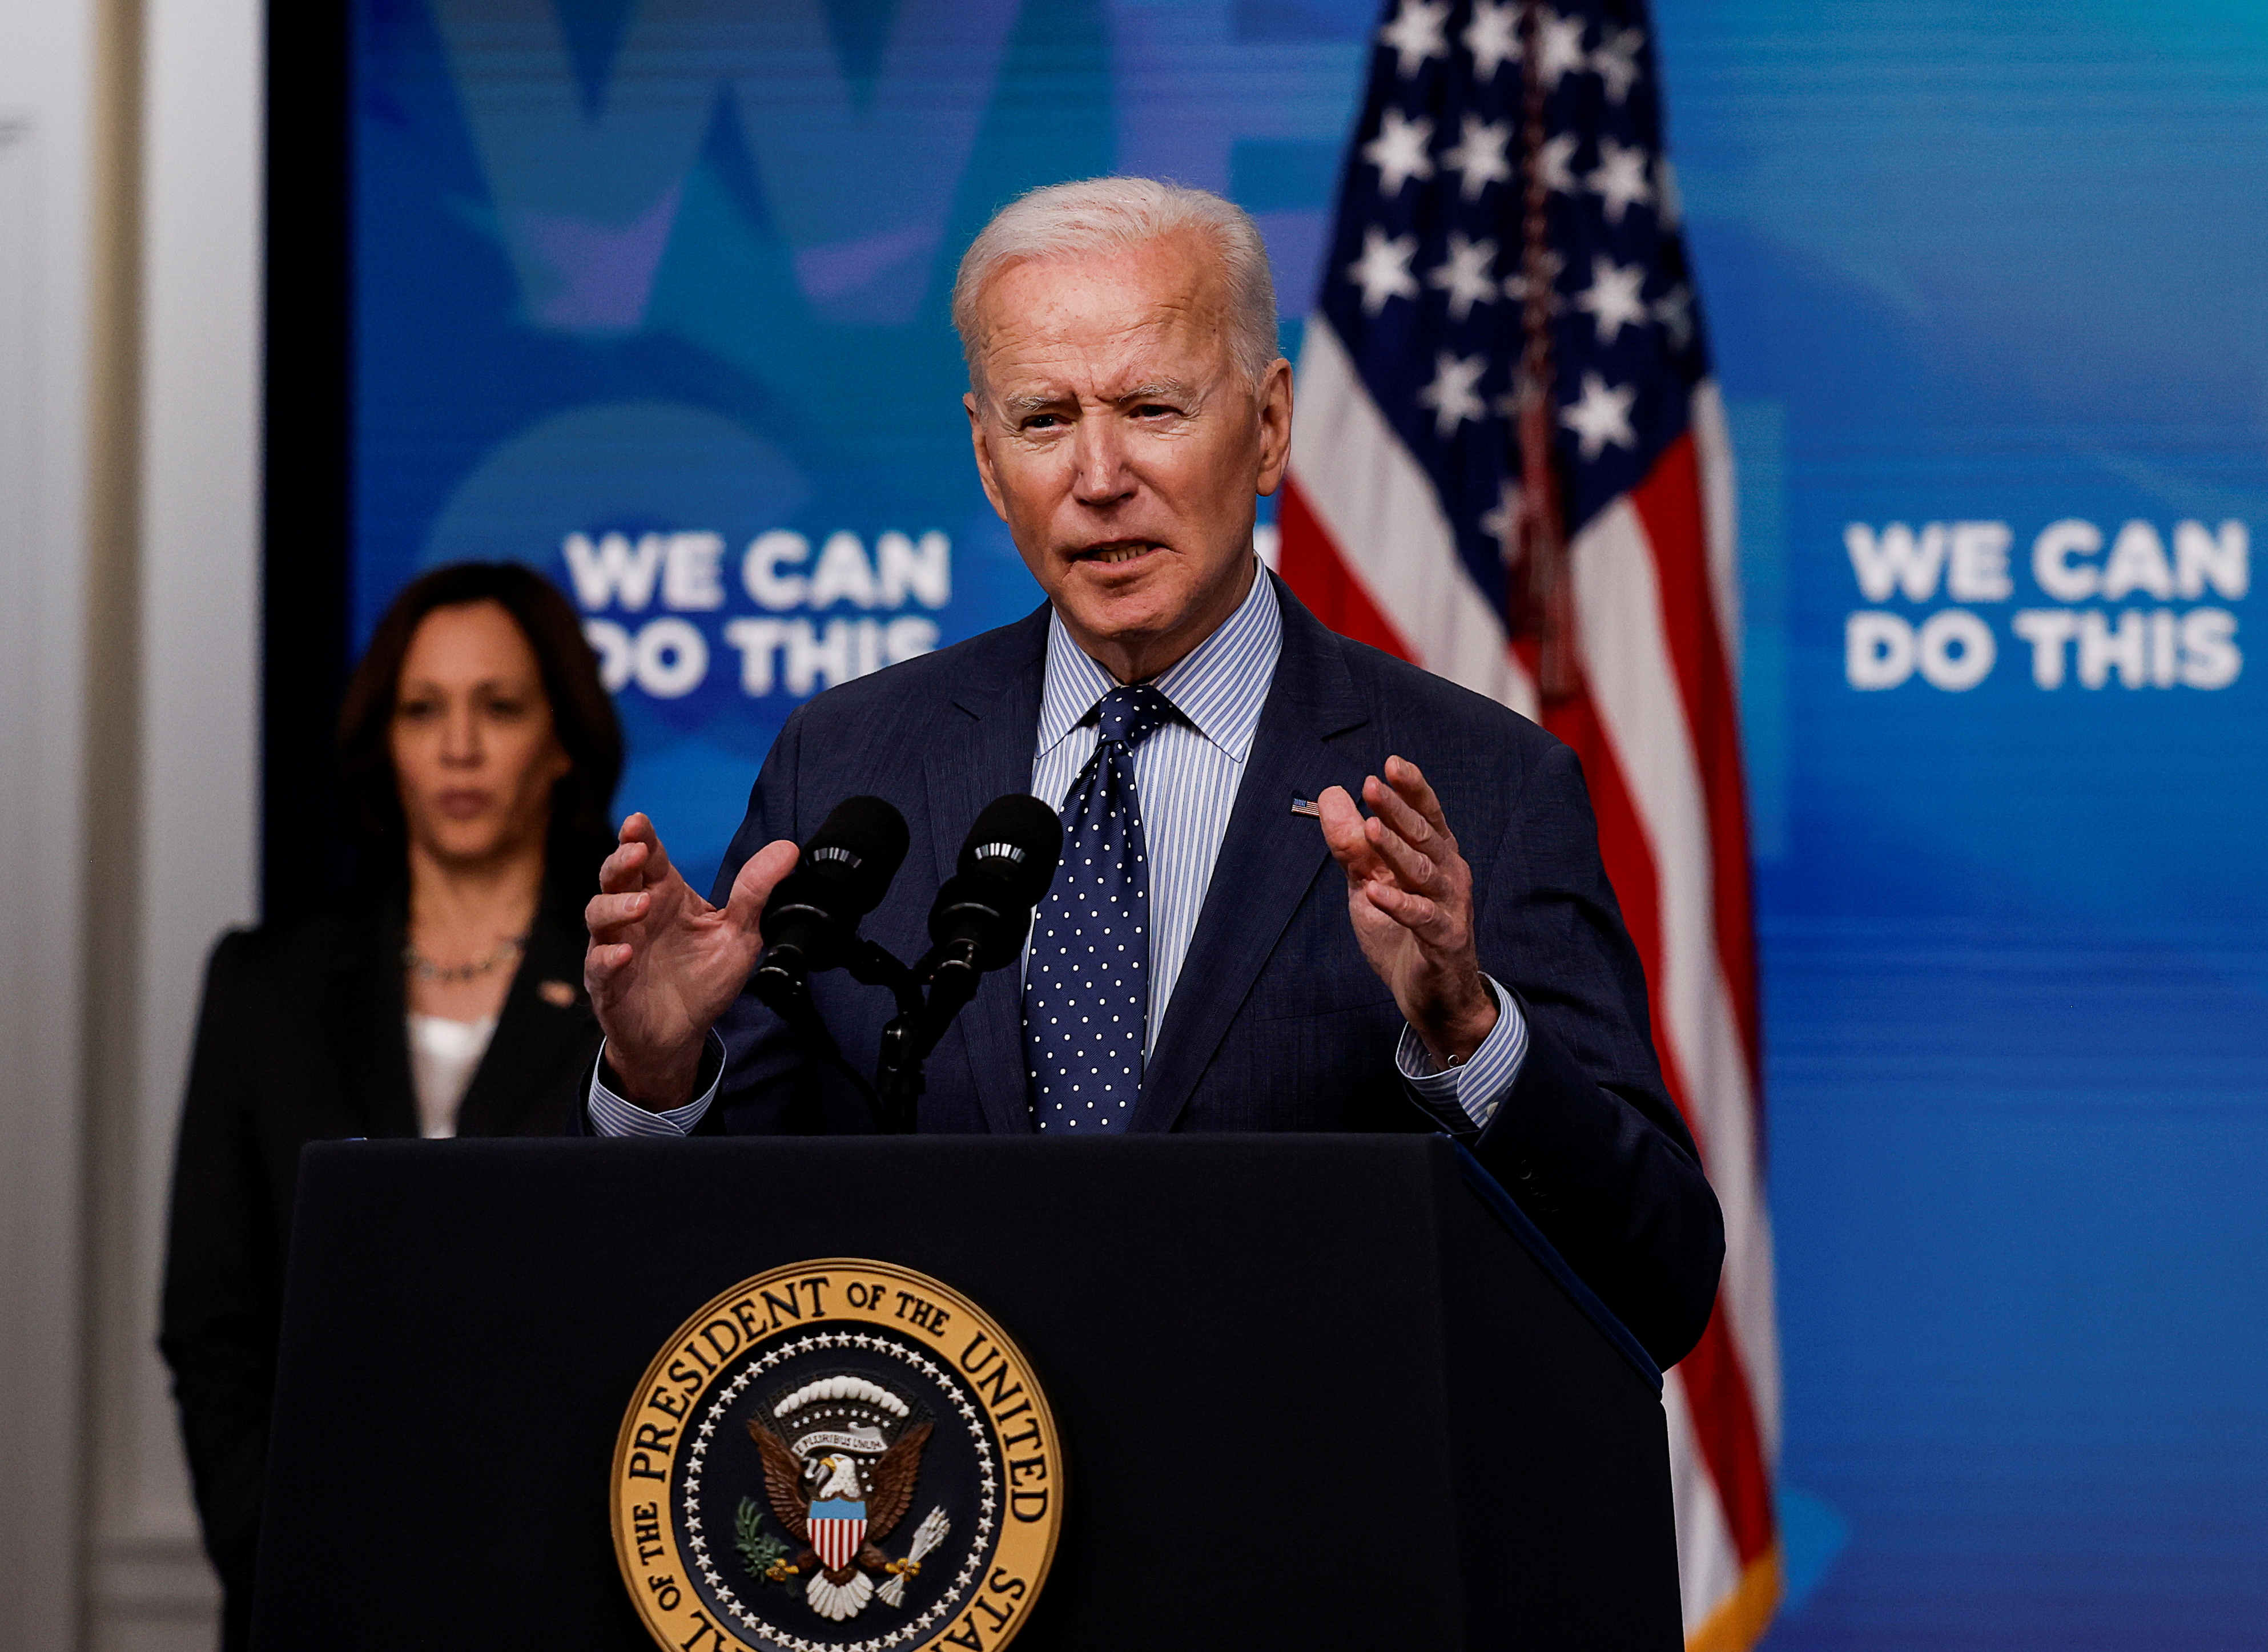 U.S. President Joe Biden delivers remarks on his administration's coronavirus disease (COVID-19) response, as Vice President Kamala Harris stands by in the Eisenhower Executive Office Building's South Court Auditorium at the White House in Washington, U.S., June 2, 2021. REUTERS/Carlos Barria/File Photo